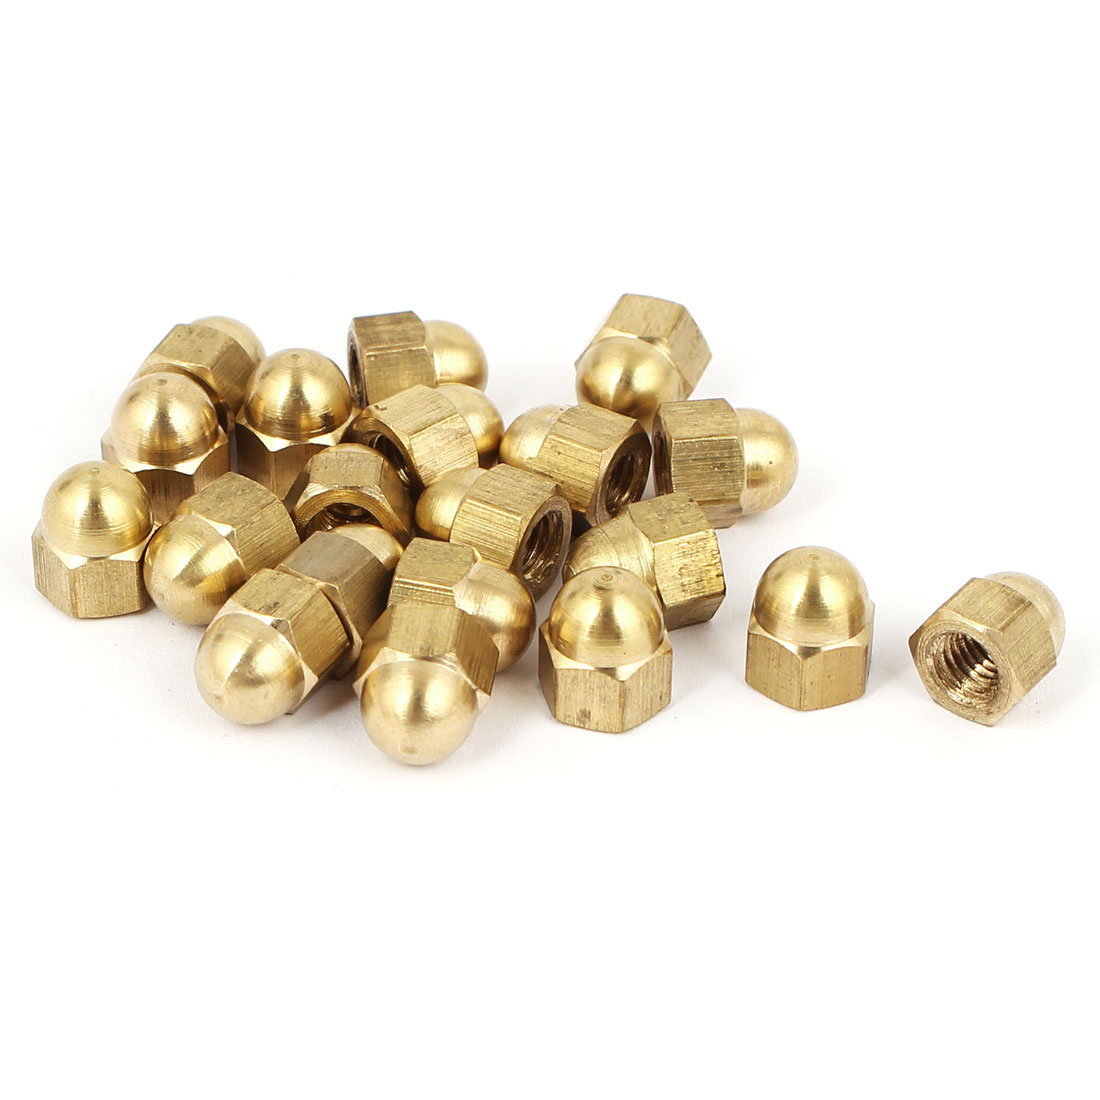 M5 Thread Dia Dome Head Brass Cap Acorn Hex Nuts 20pcs